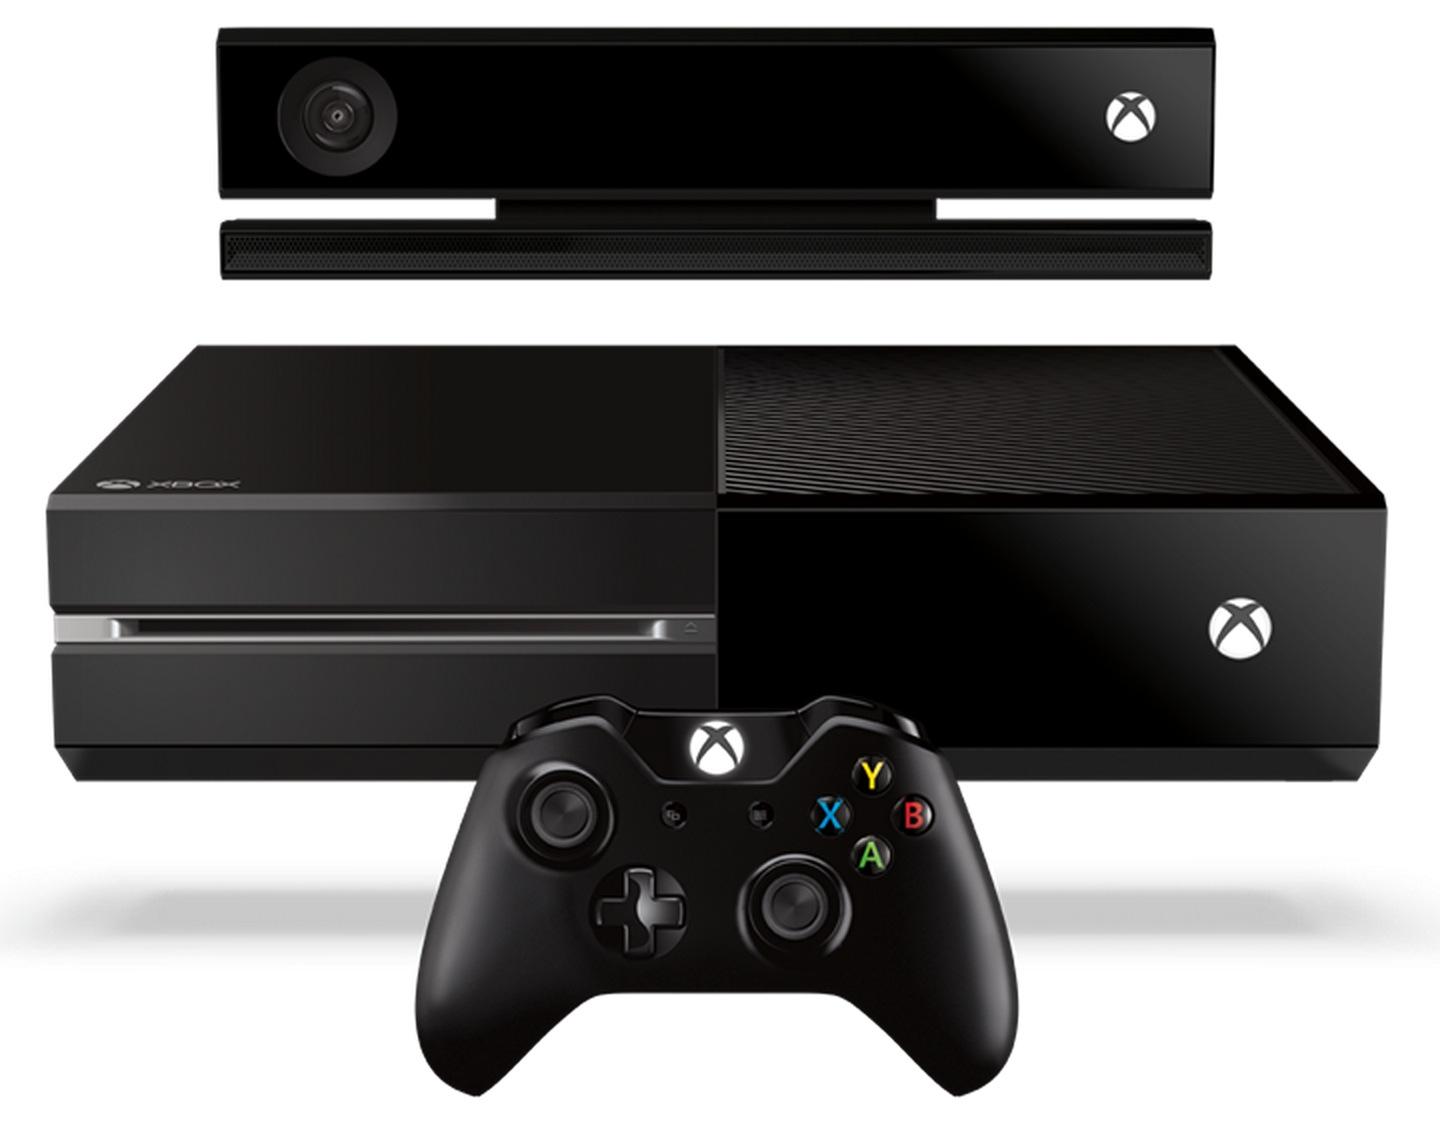 Big Xbox One Update Adds New Home/Guide Screens And More Today